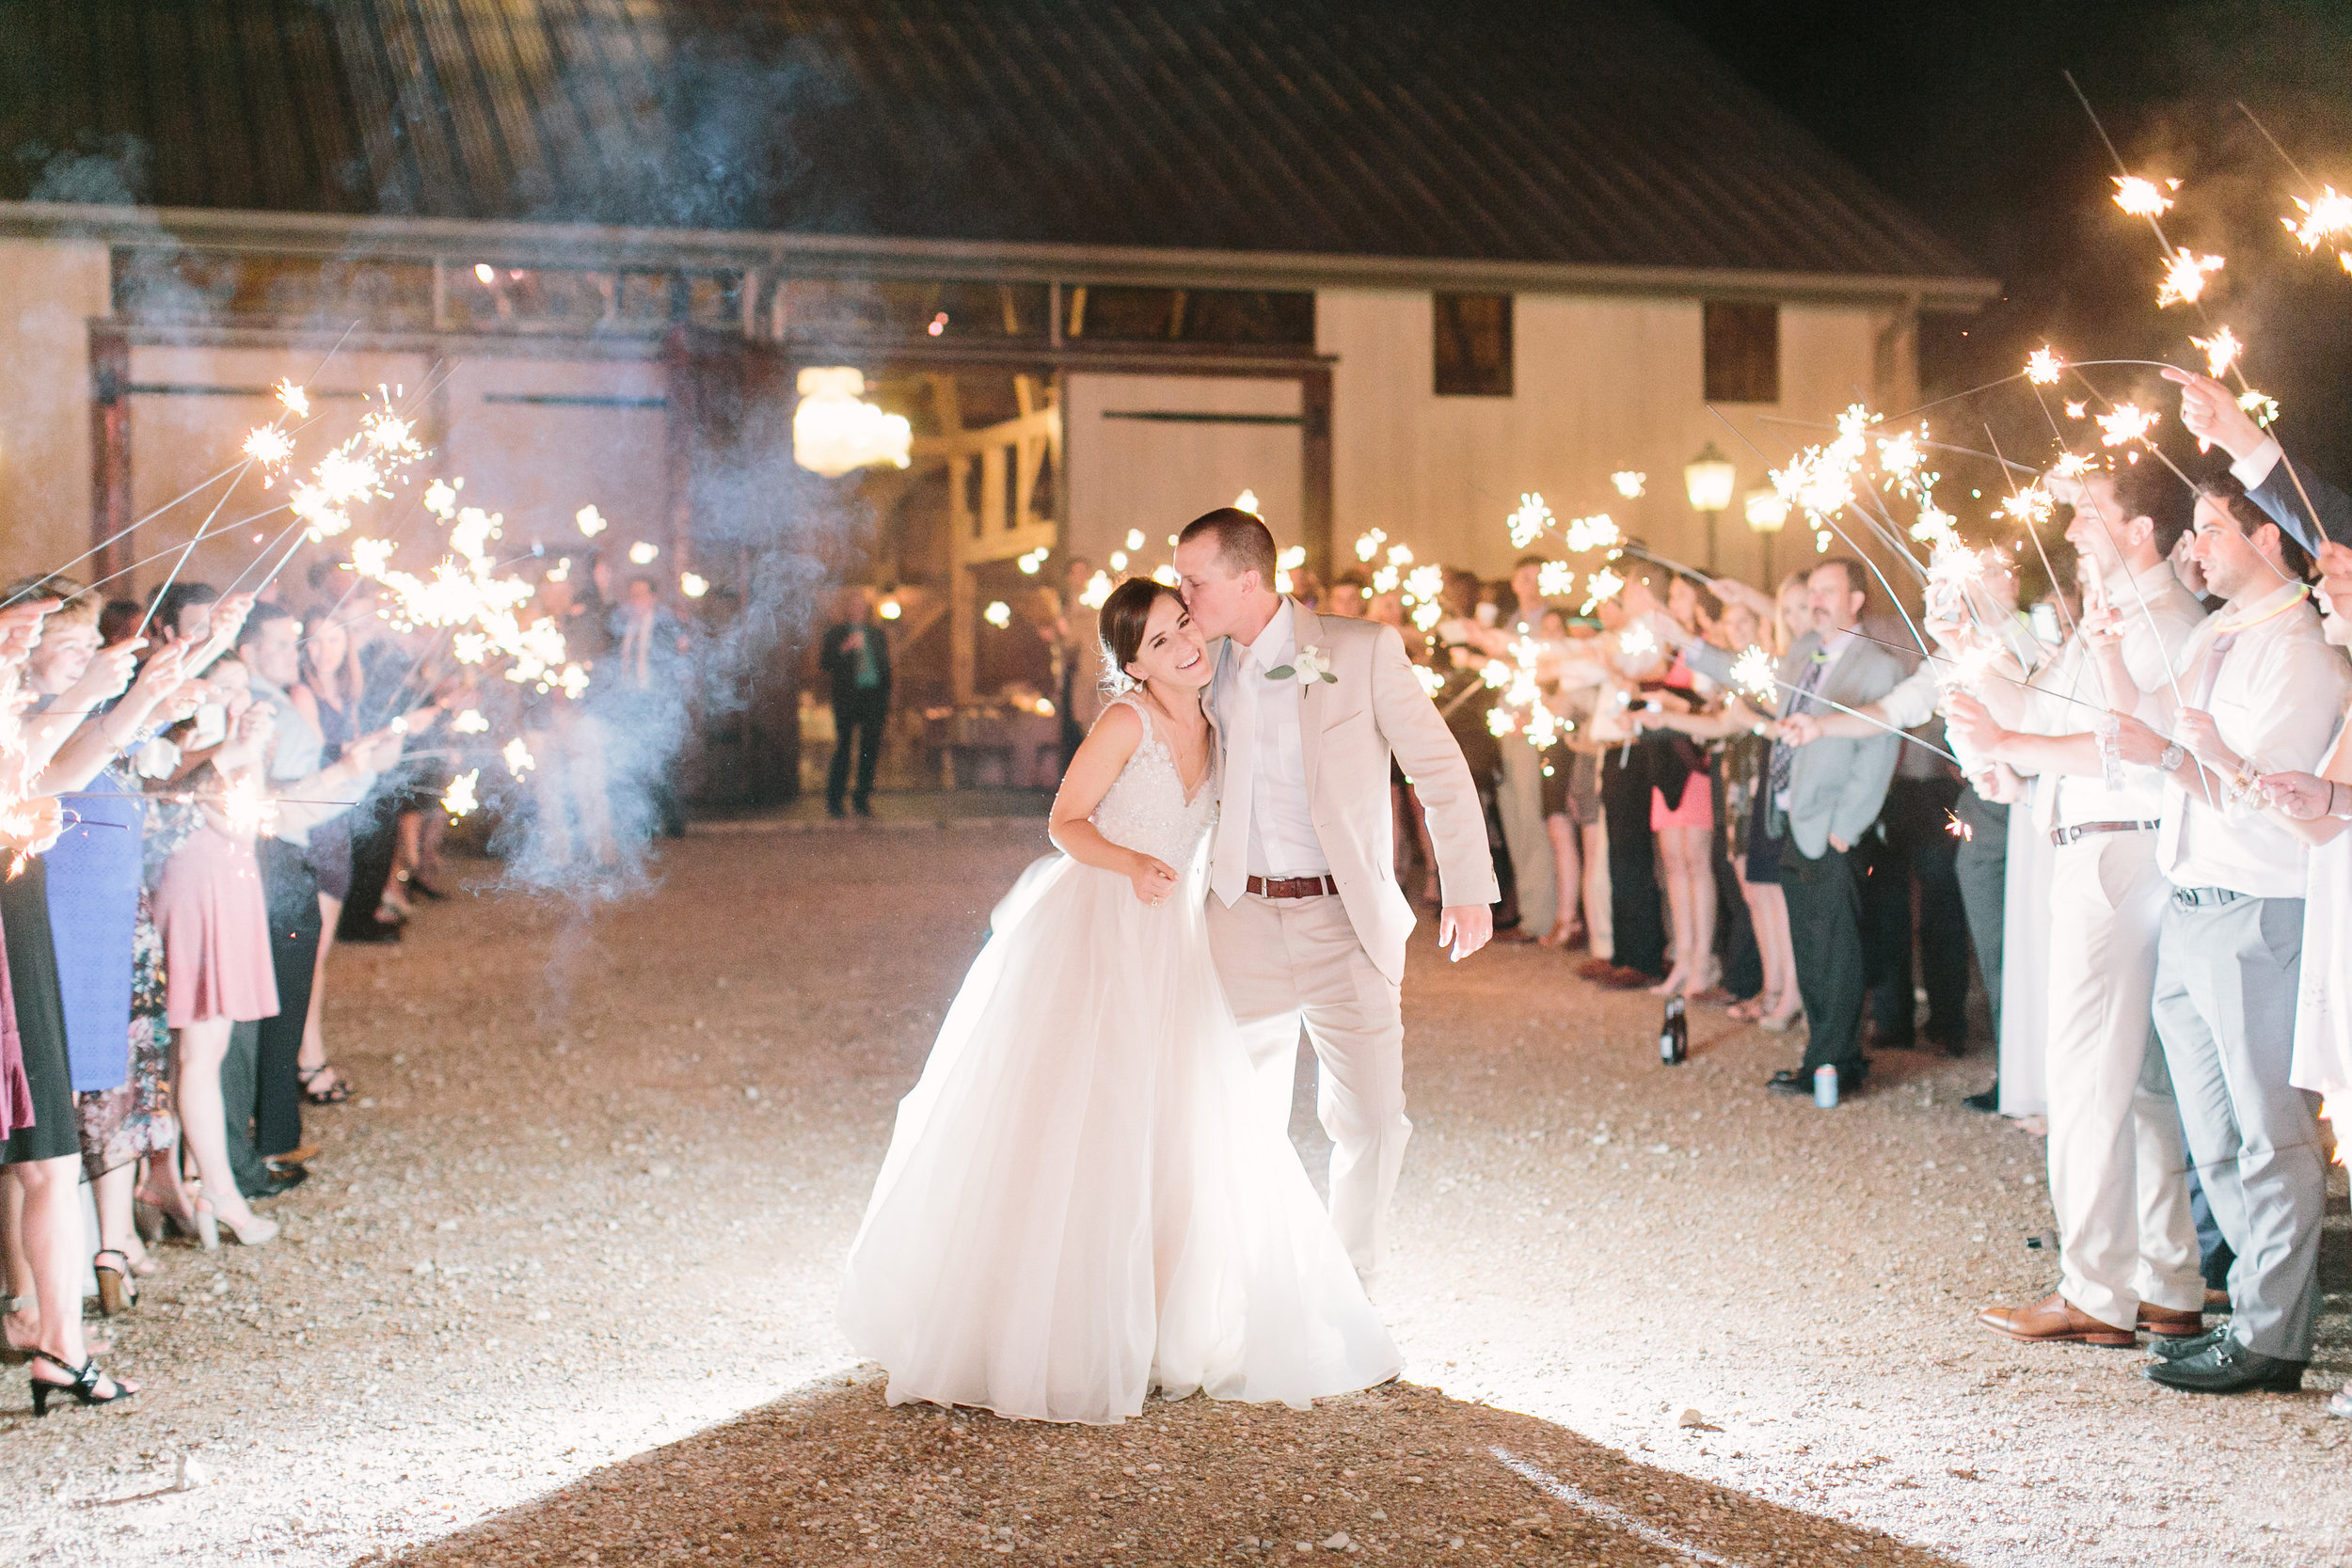 newlyweds with sparklers in katy texas